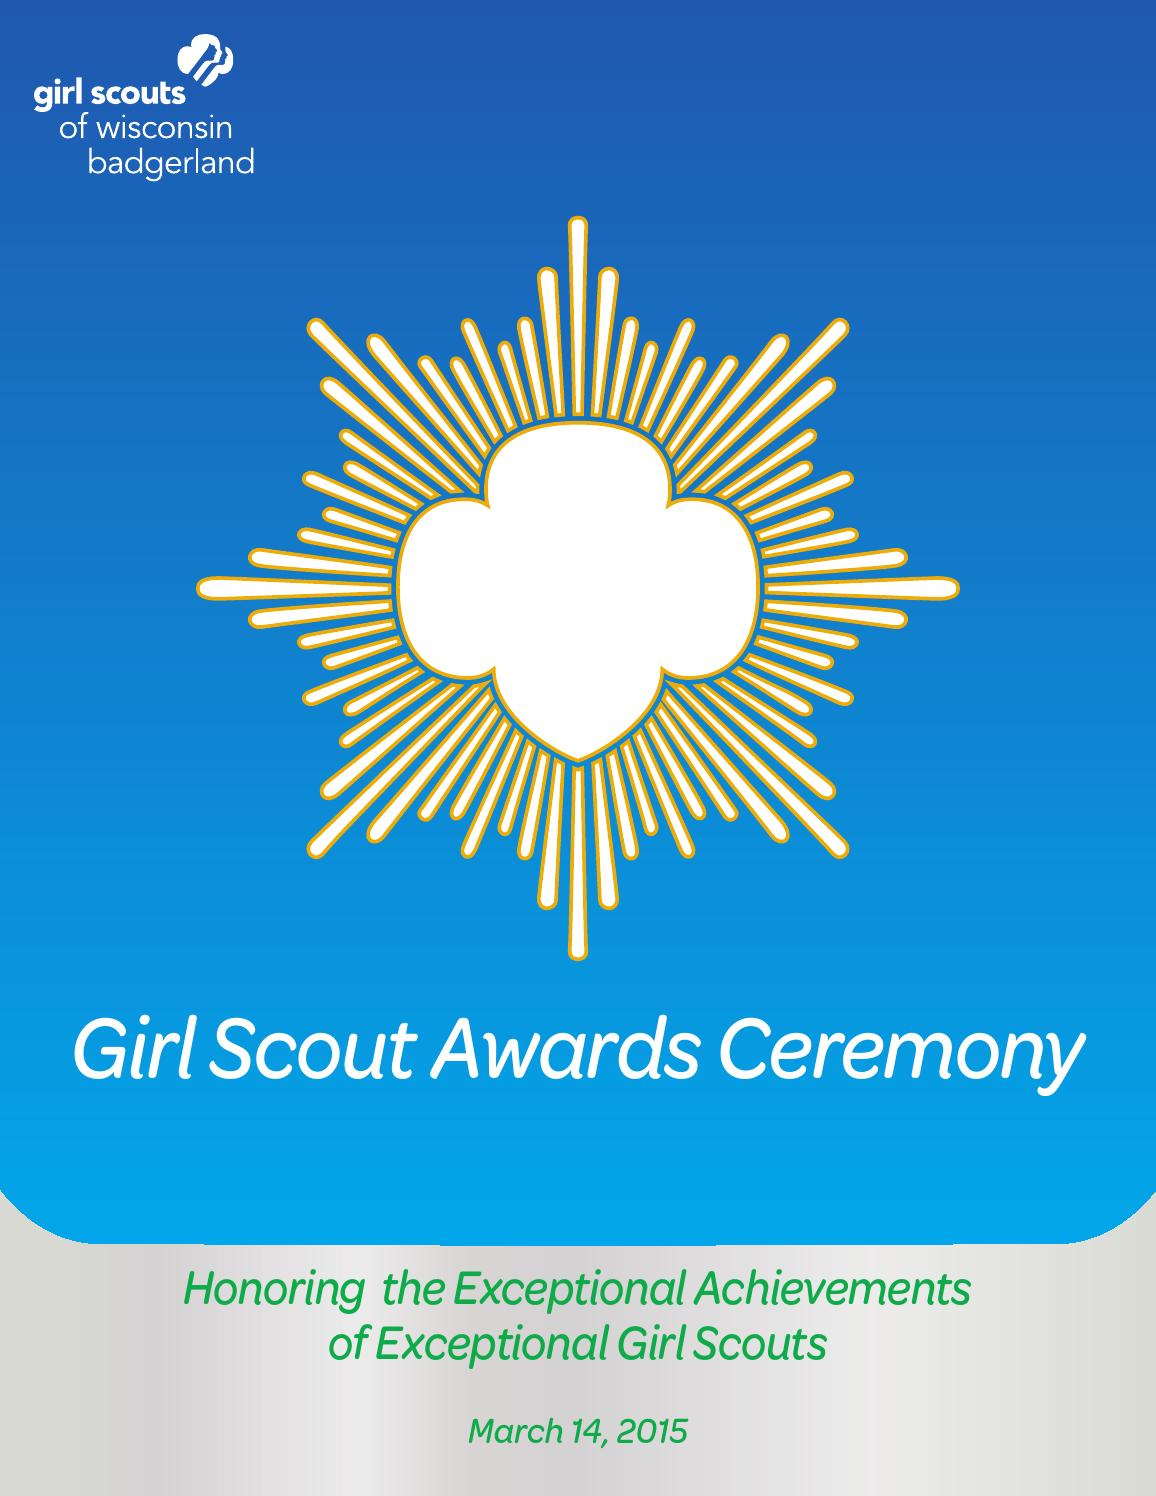 badgerland awards ceremony program 2015 by girl scouts of